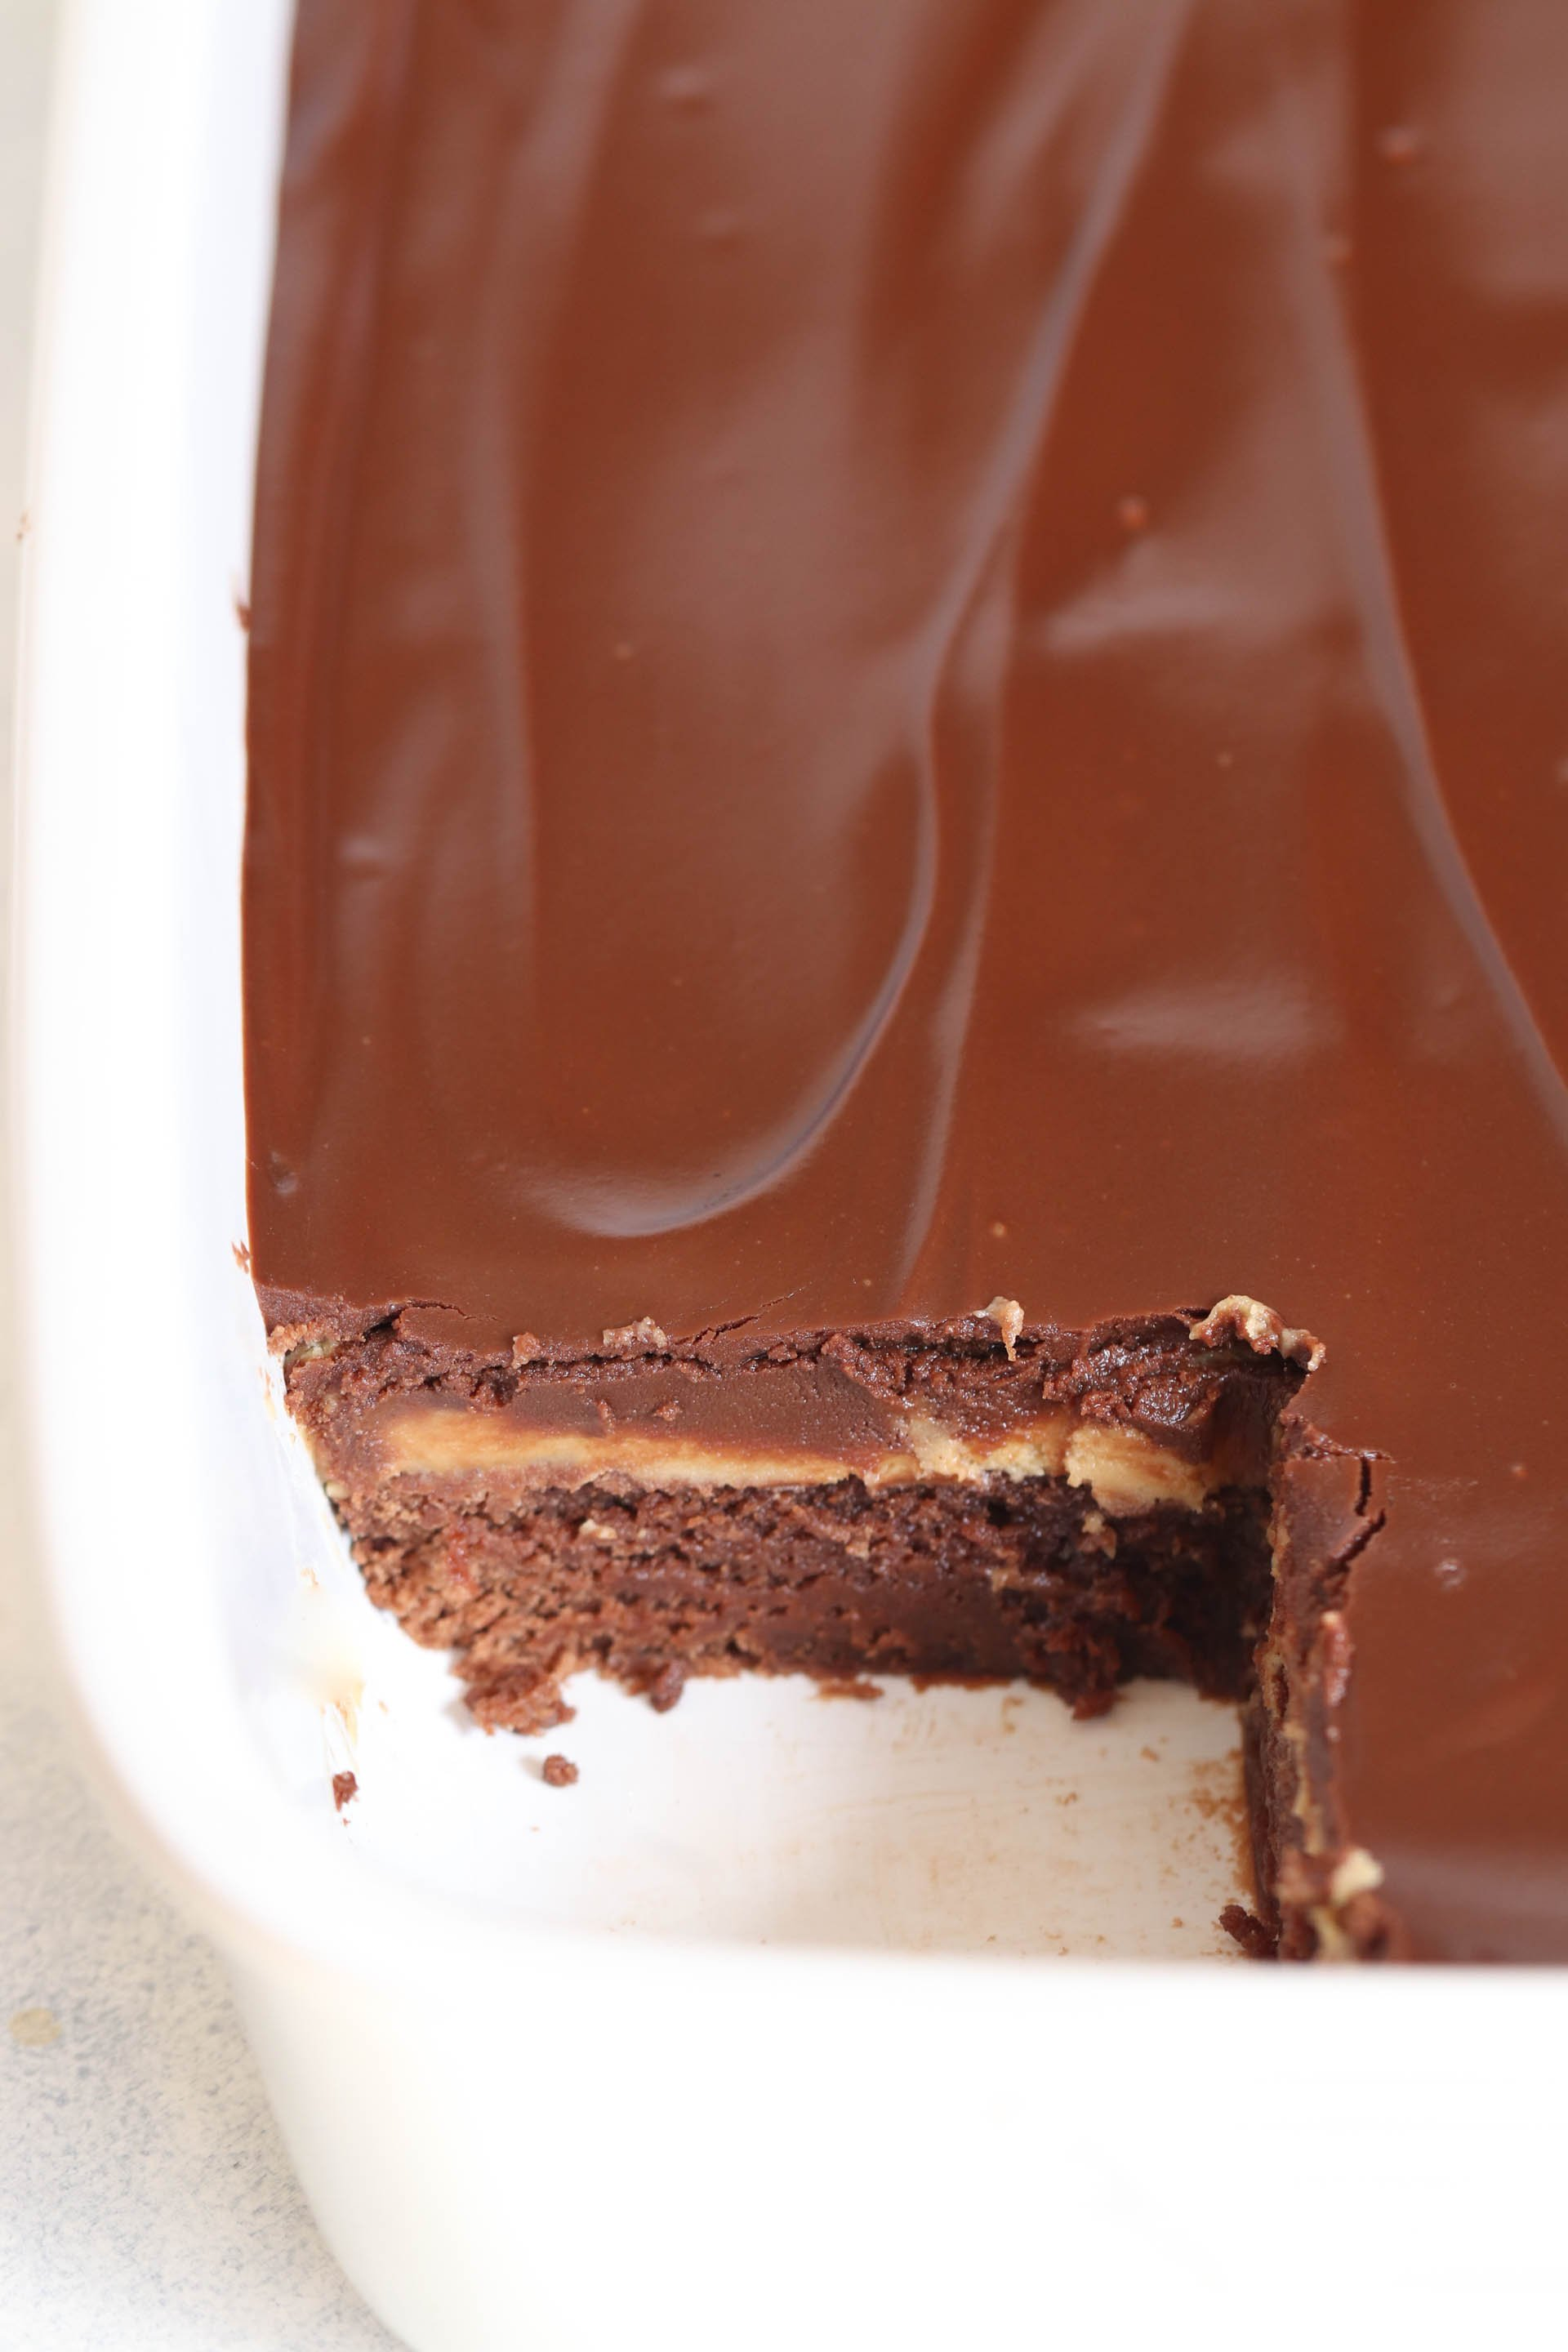 Pan of Buckeye Brownies with one square missing